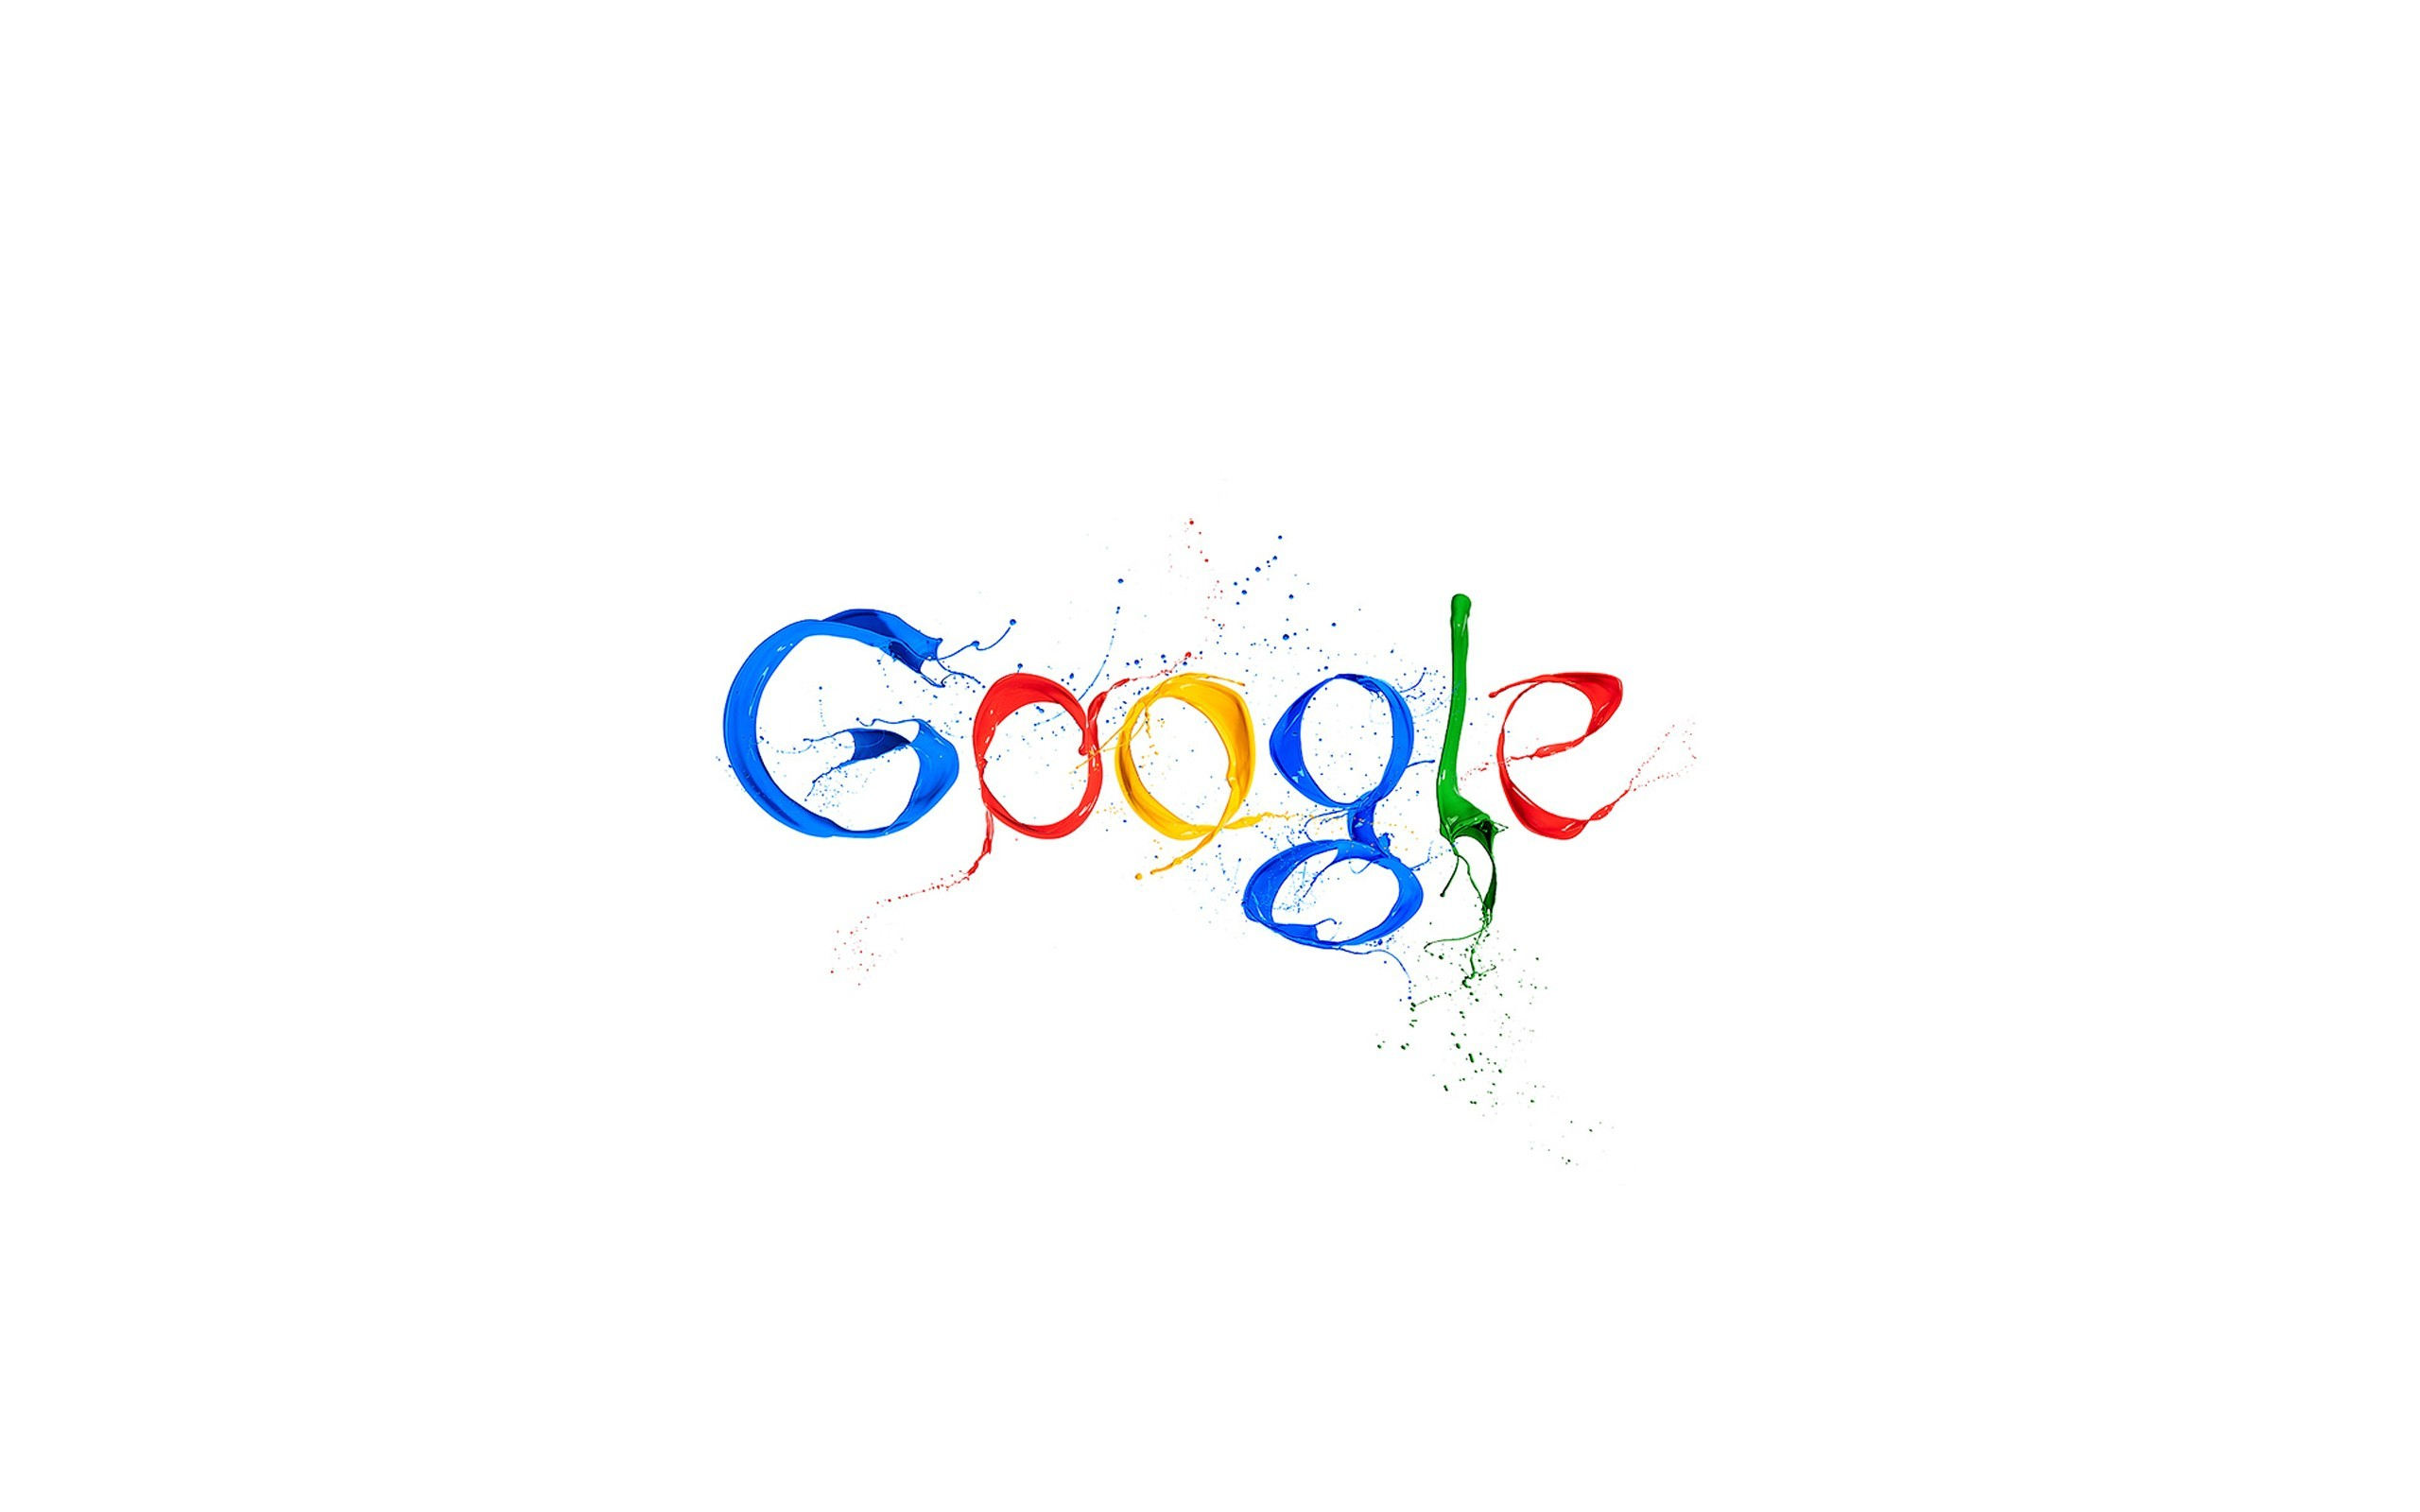 Paint Google Digital Art Logos White Background Wallpaper